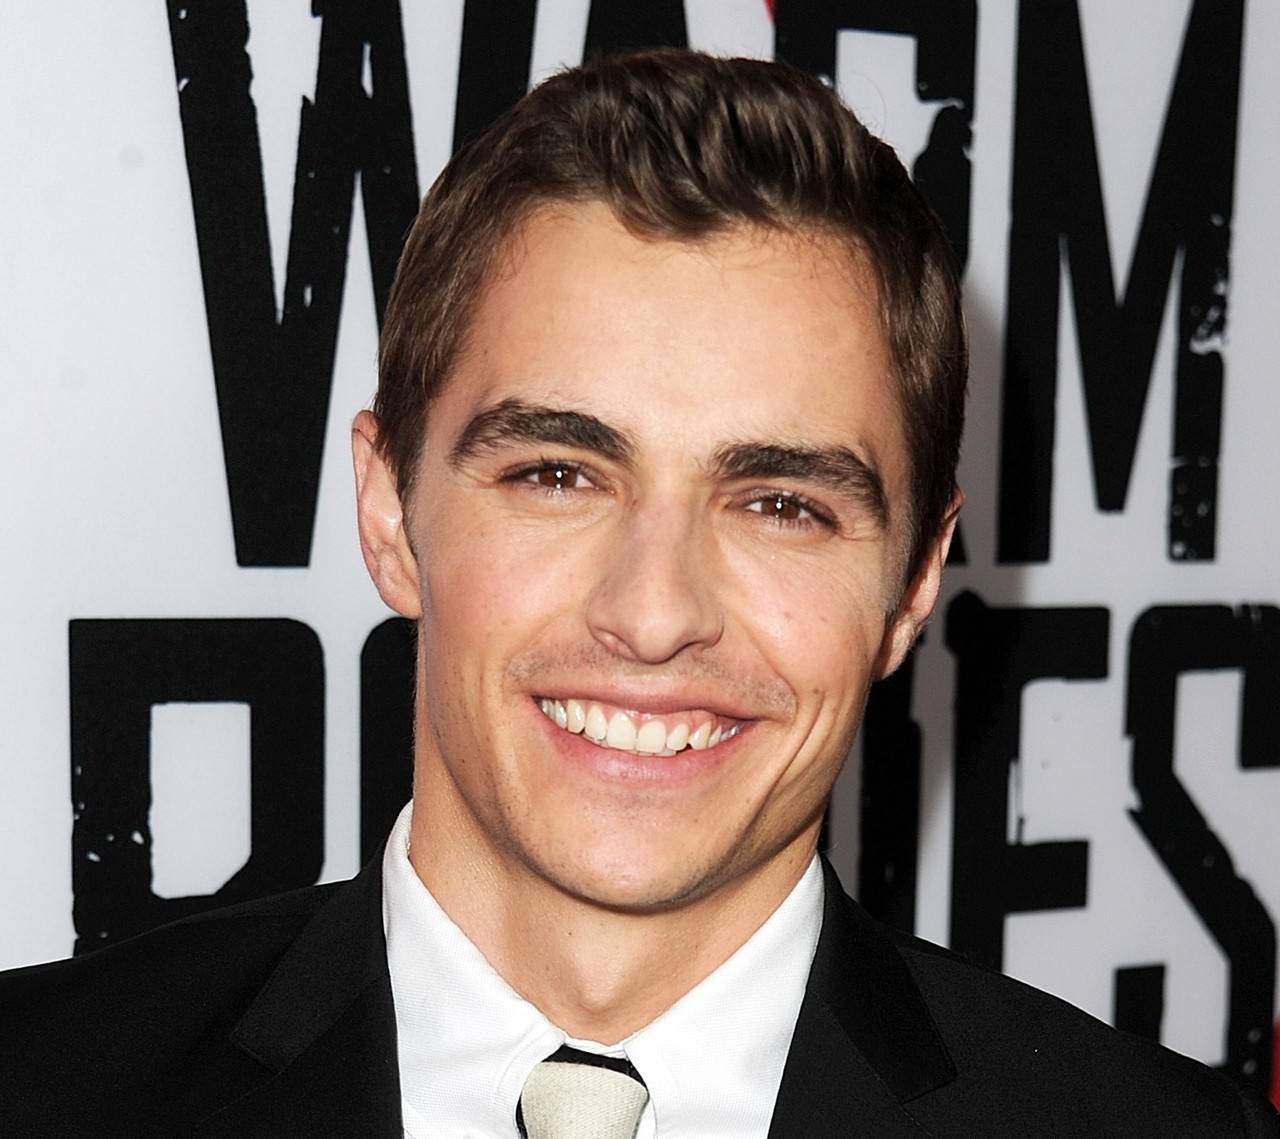 Dave Franco Net Worth